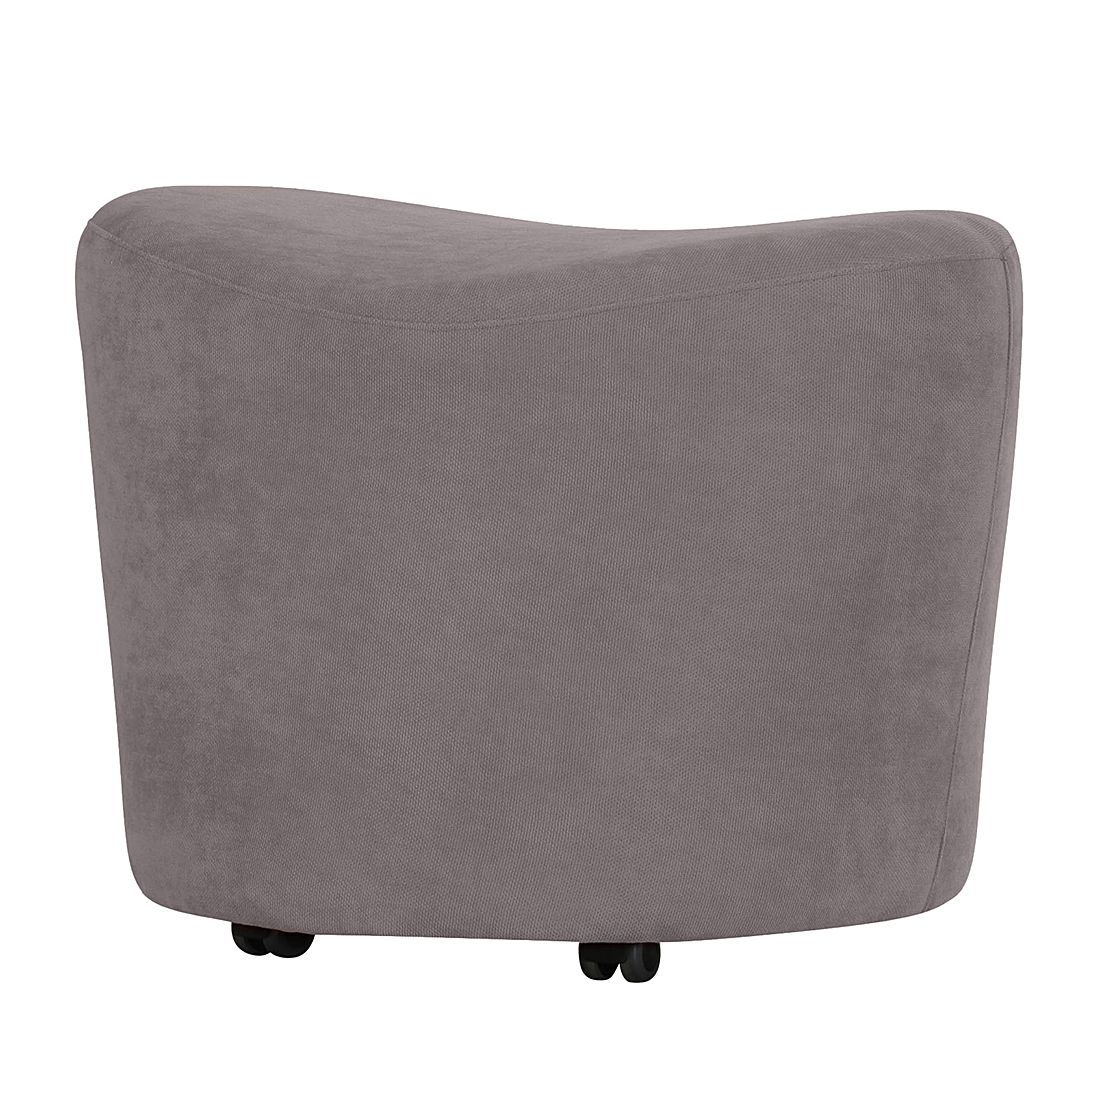 Hocker Kenai Webstoff - Grau, roomscape